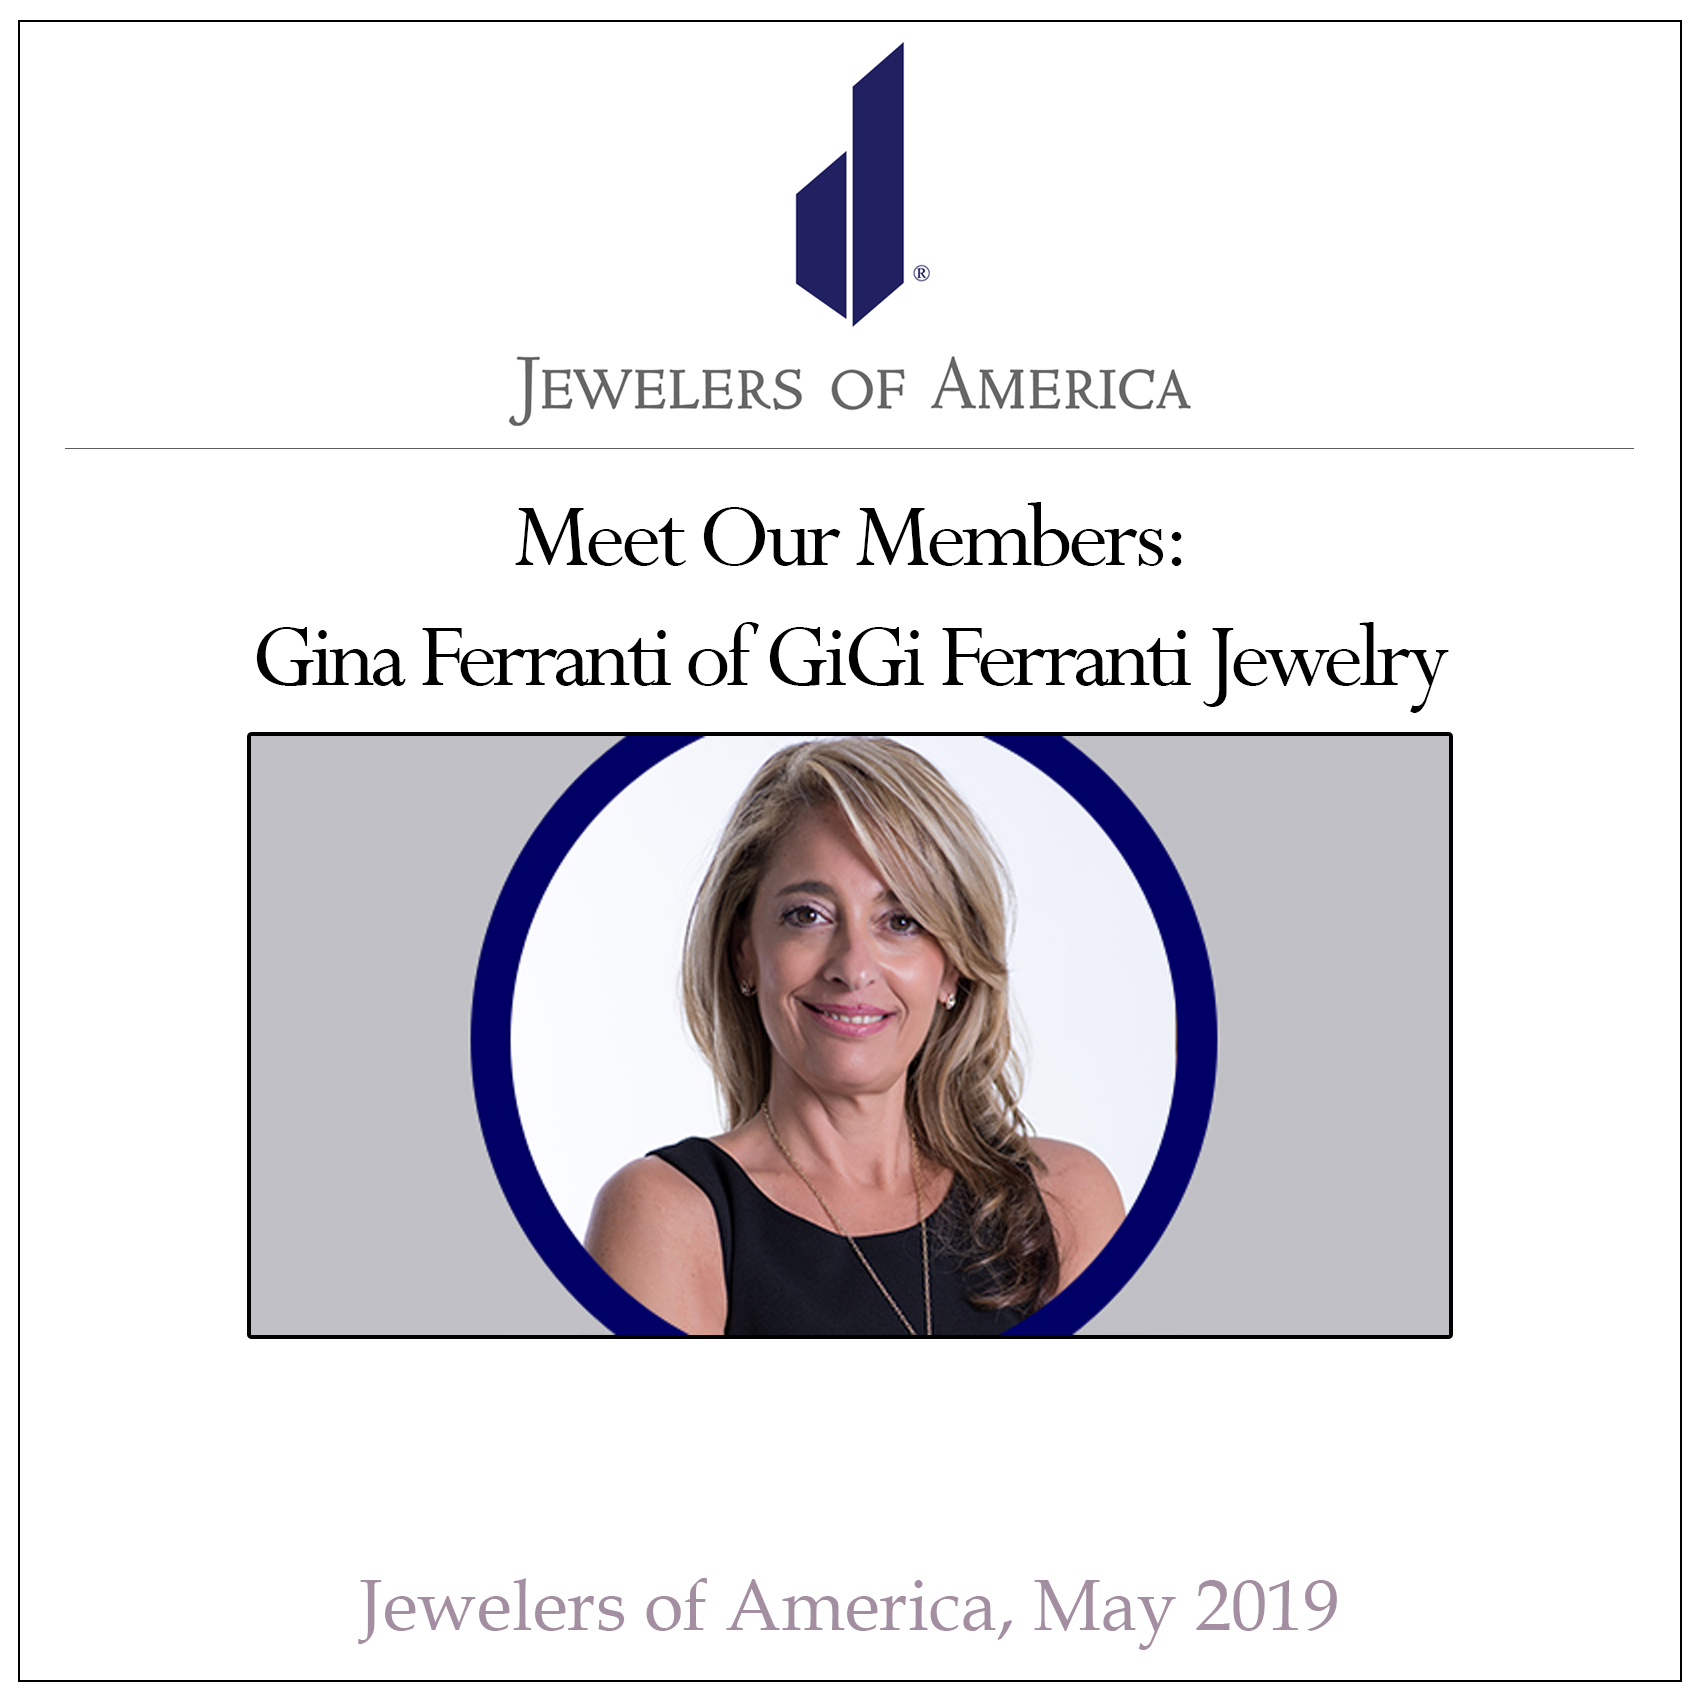 jewelers-of-america-may-2019.png